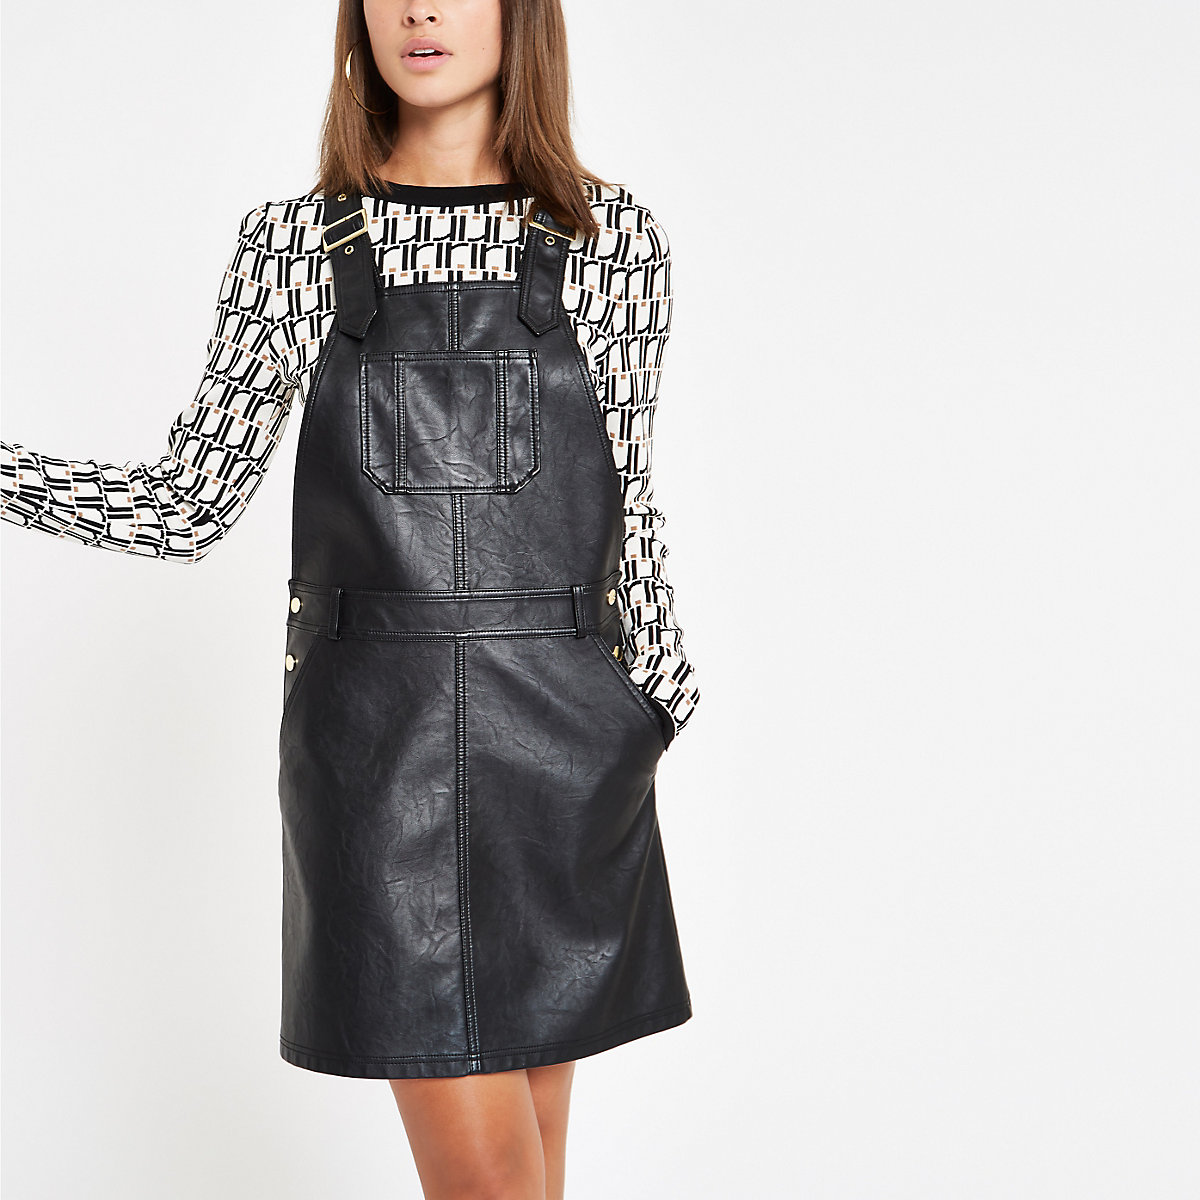 Black faux leather pinafore overall dress